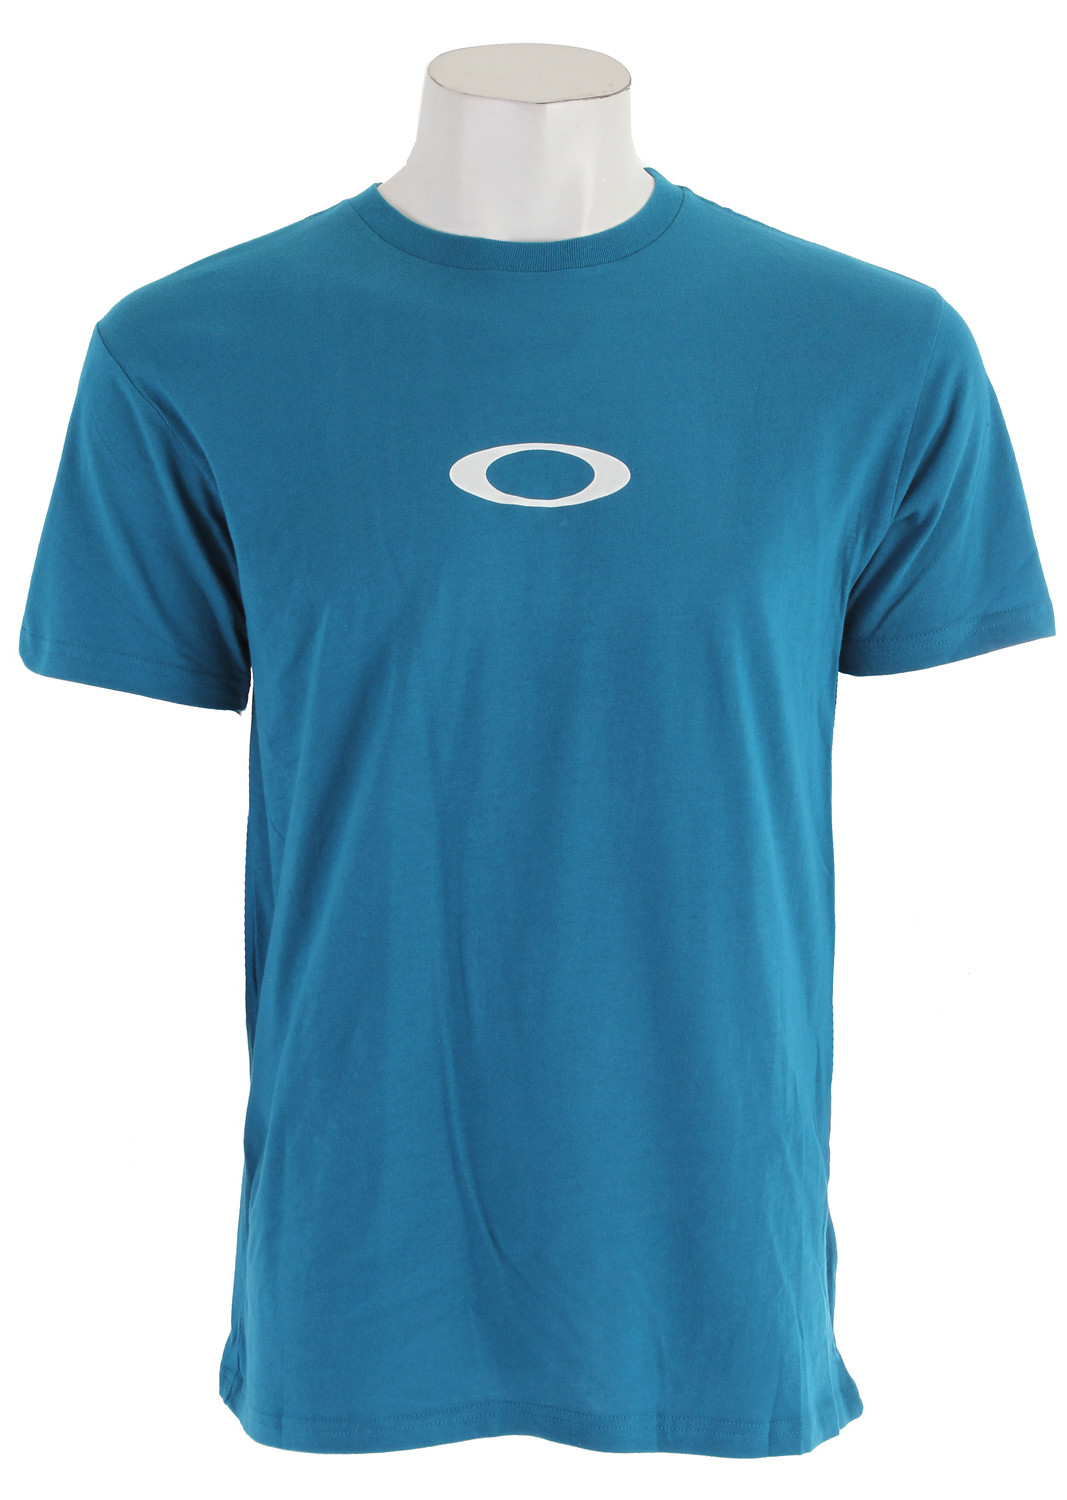 Oakley Icon 2.8 T-Shirt Astral Blue  oakley-icon-28-tee-astral-blue-11.jpg